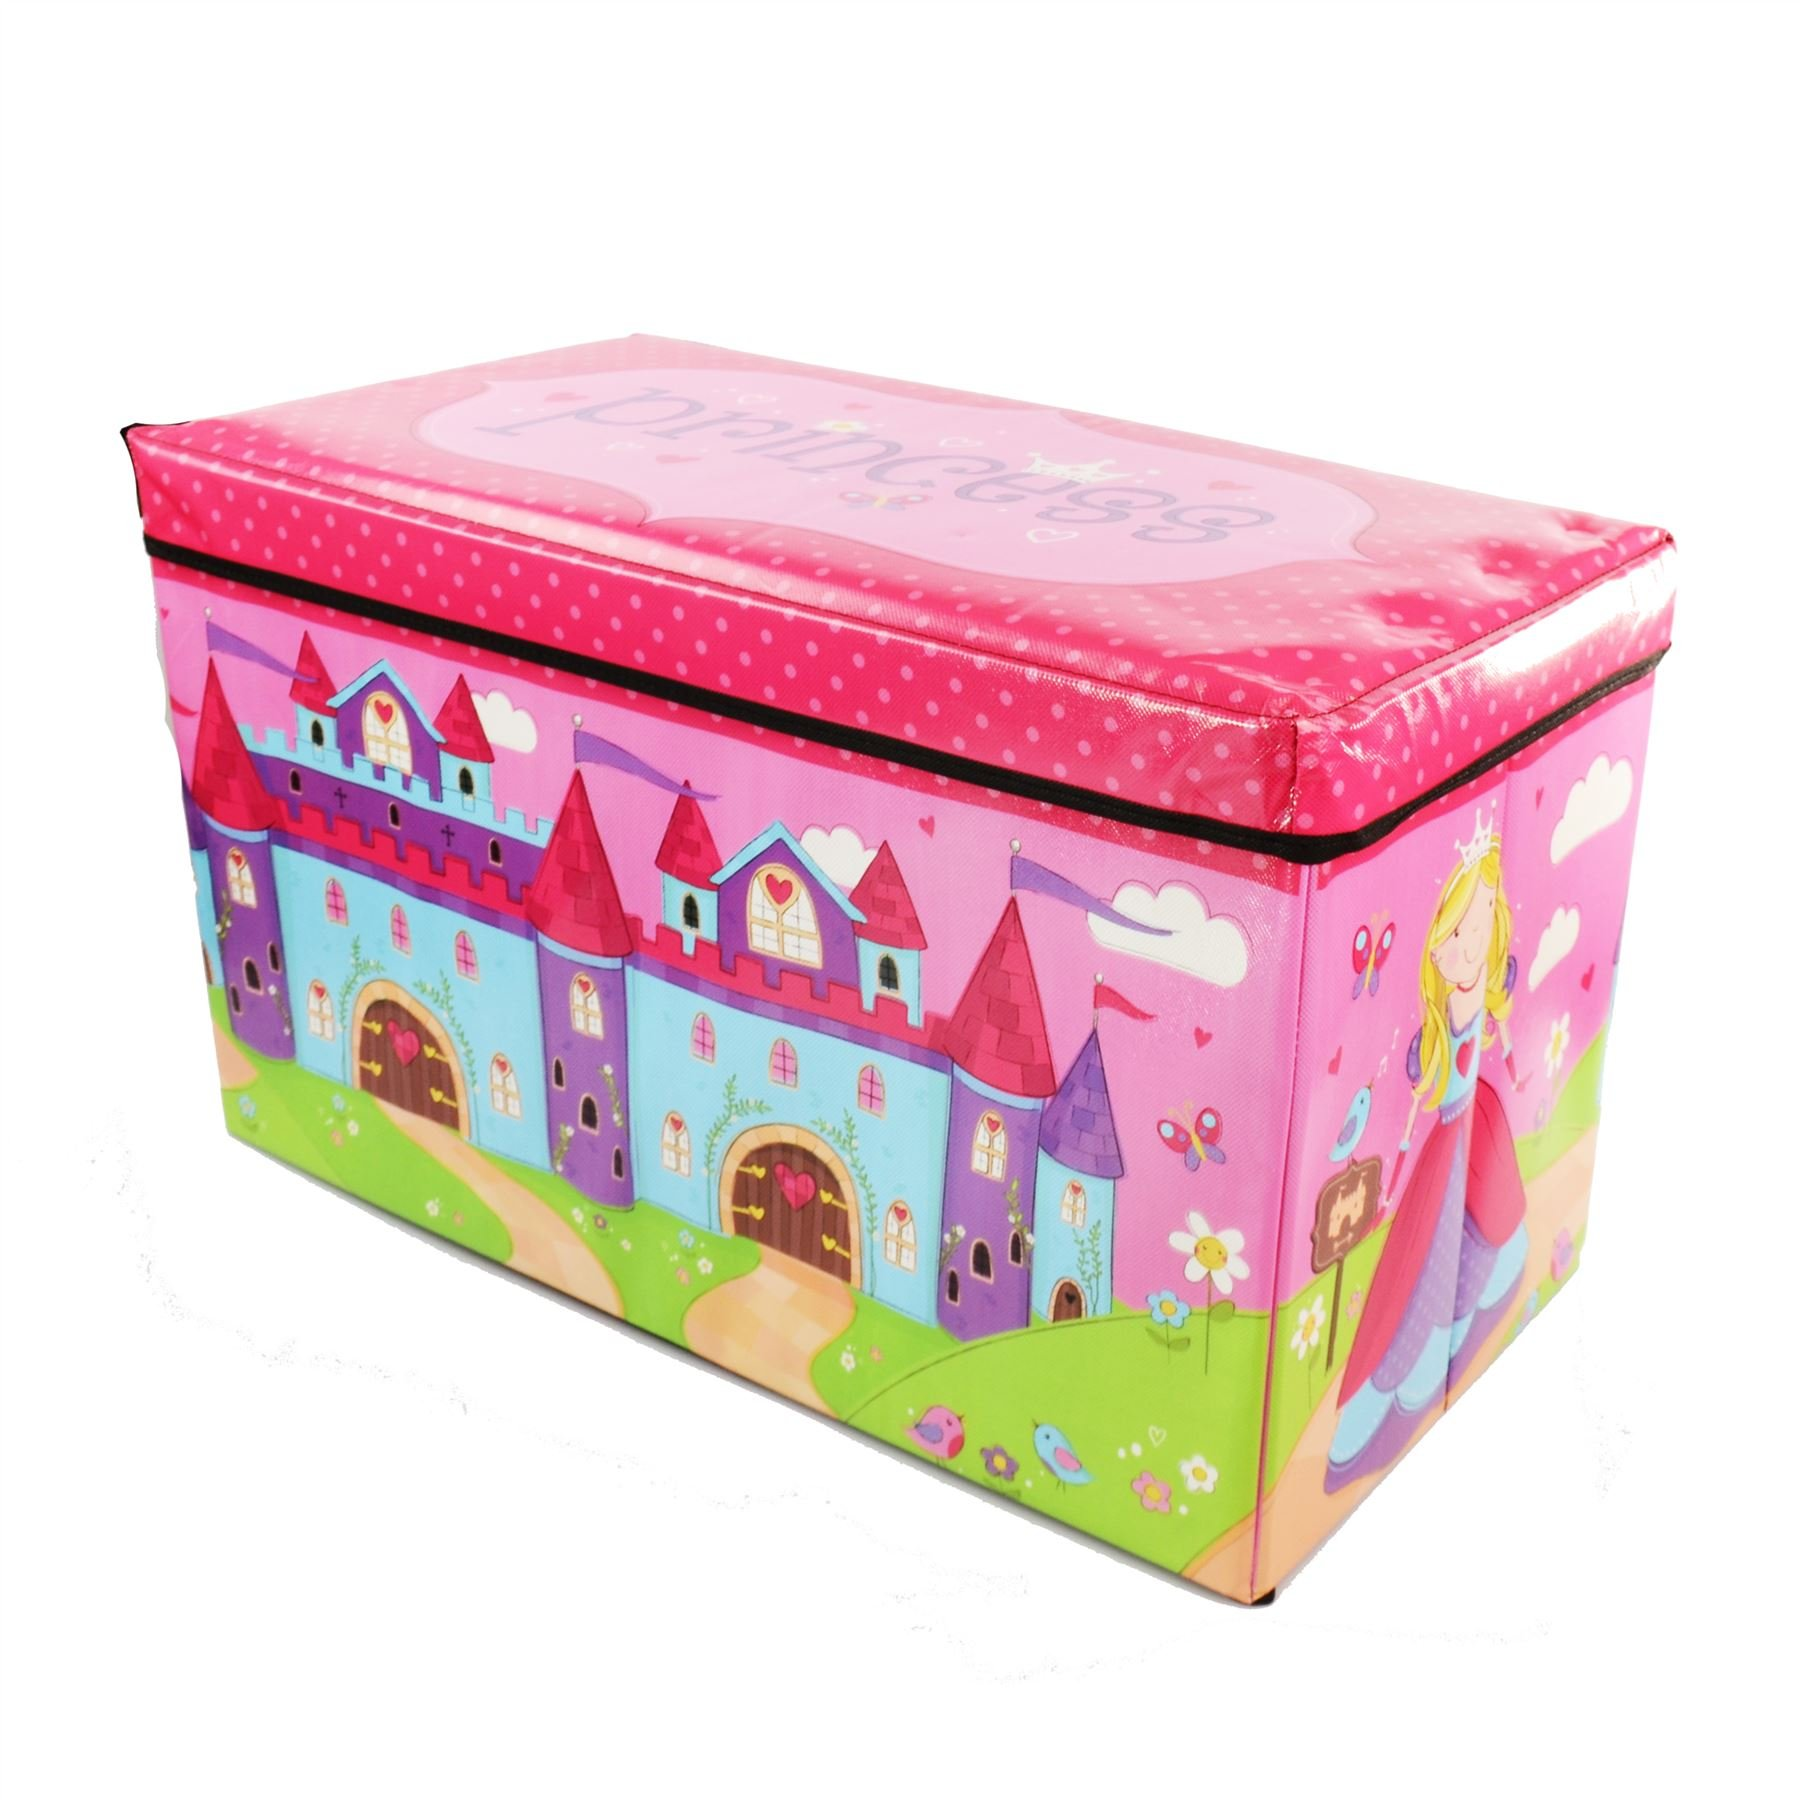 Kids Childrens Boys Girls Large Storage Toy Box Books Chest Clothes Seat Stool PRINCESS  sc 1 st  Amazon UK & Children Storage Box: Amazon.co.uk